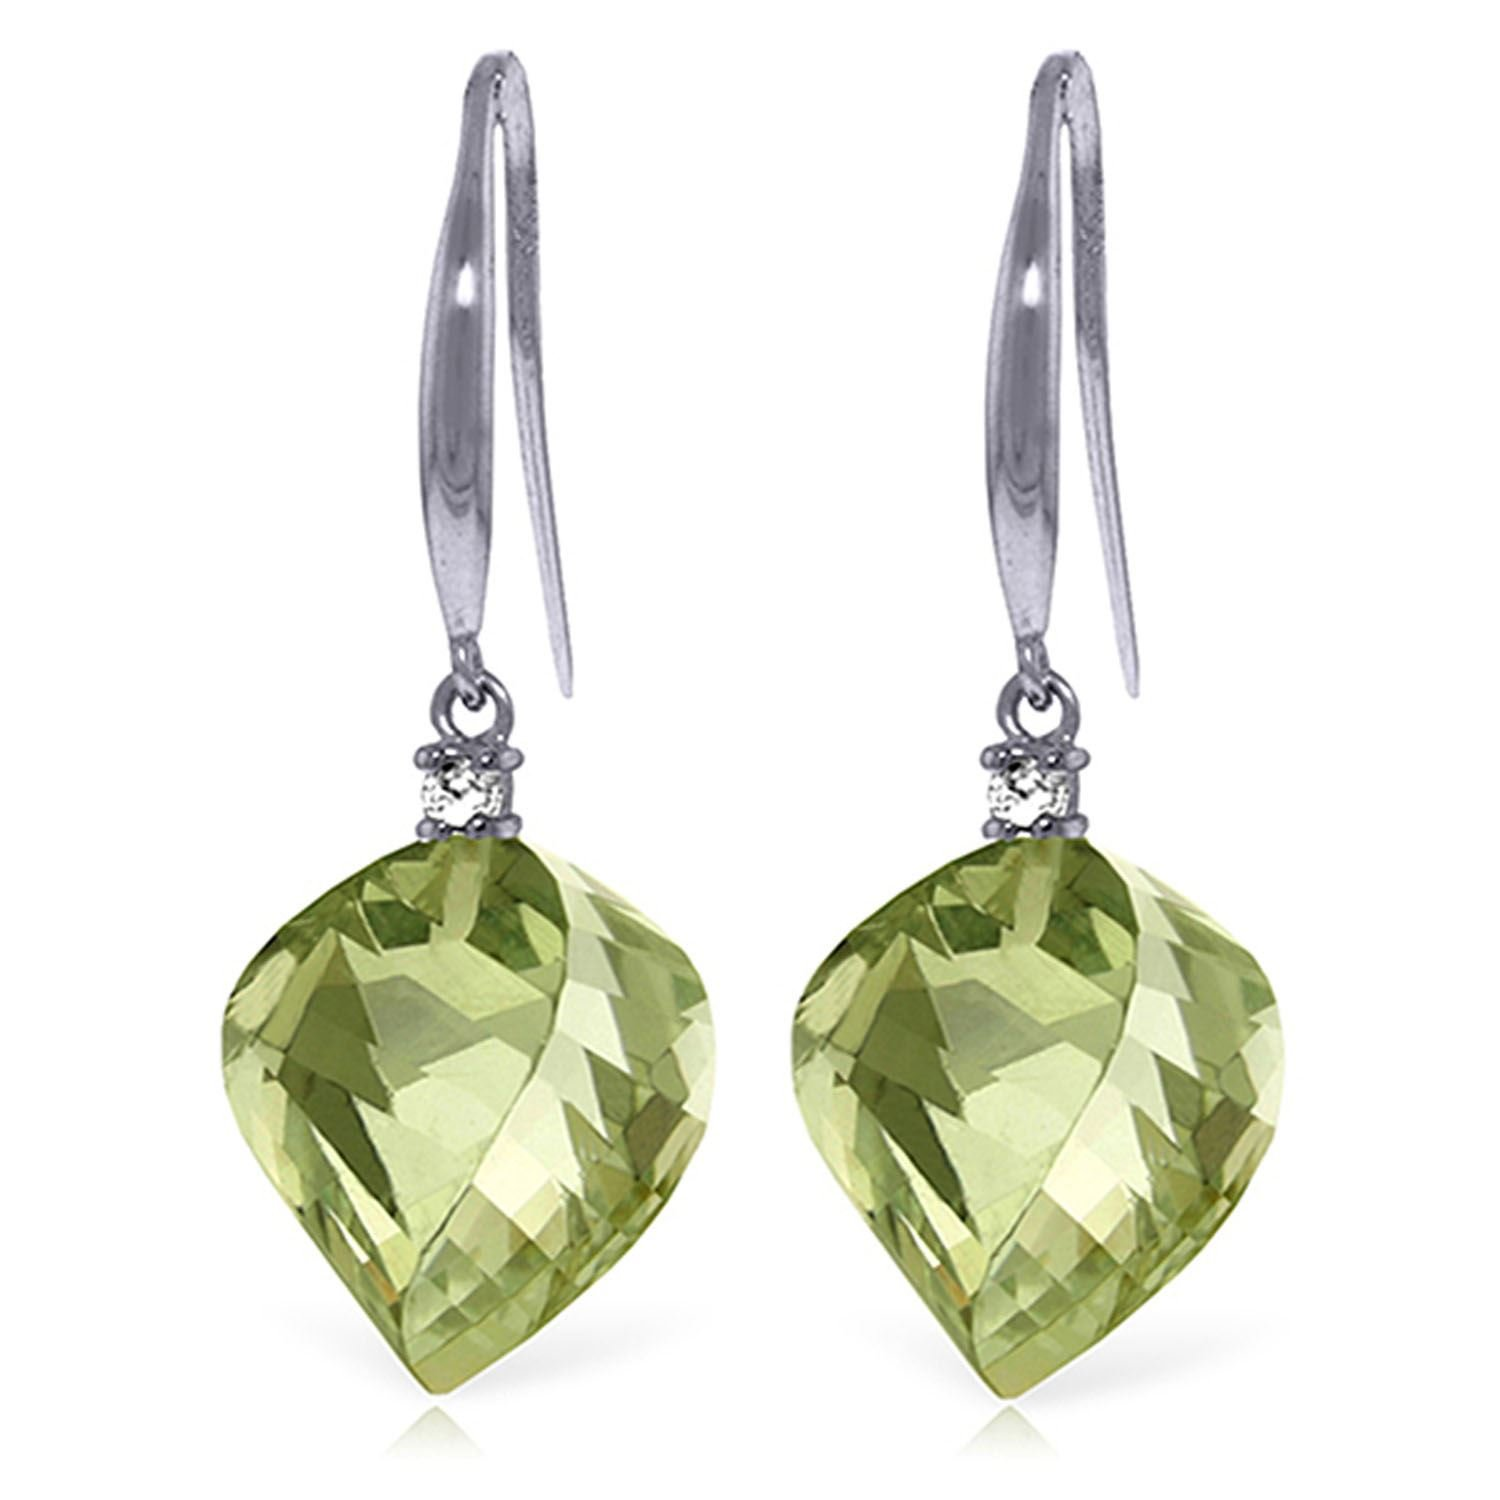 ALARRI 26.1 CTW 14K Solid White Gold Found My Love Green Amethyst Diamond Earrings by ALARRI (Image #1)